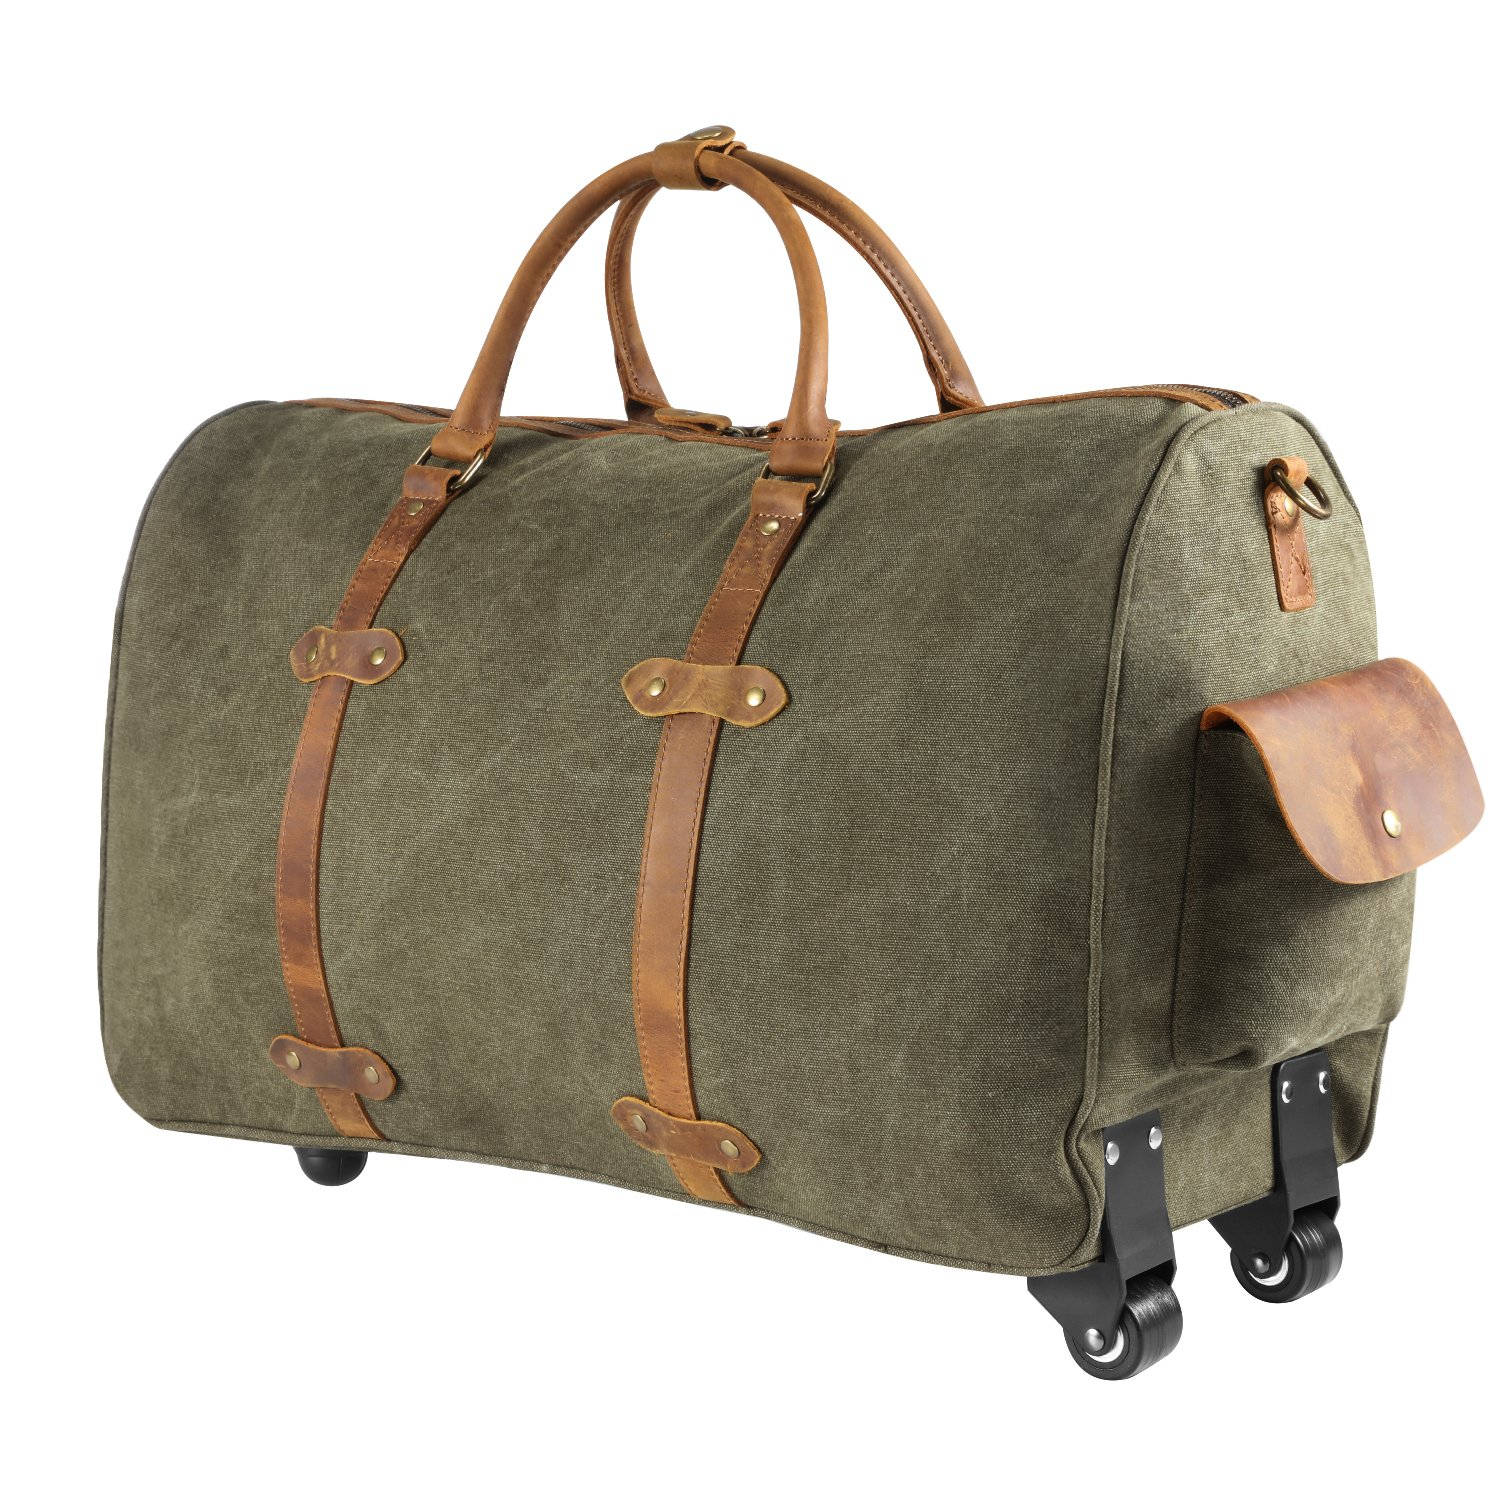 Kattee Rolling Duffle Bag with Wheels Canvas Travel Luggage Duffel Bag 50L (Army Green) by Kattee (Image #5)